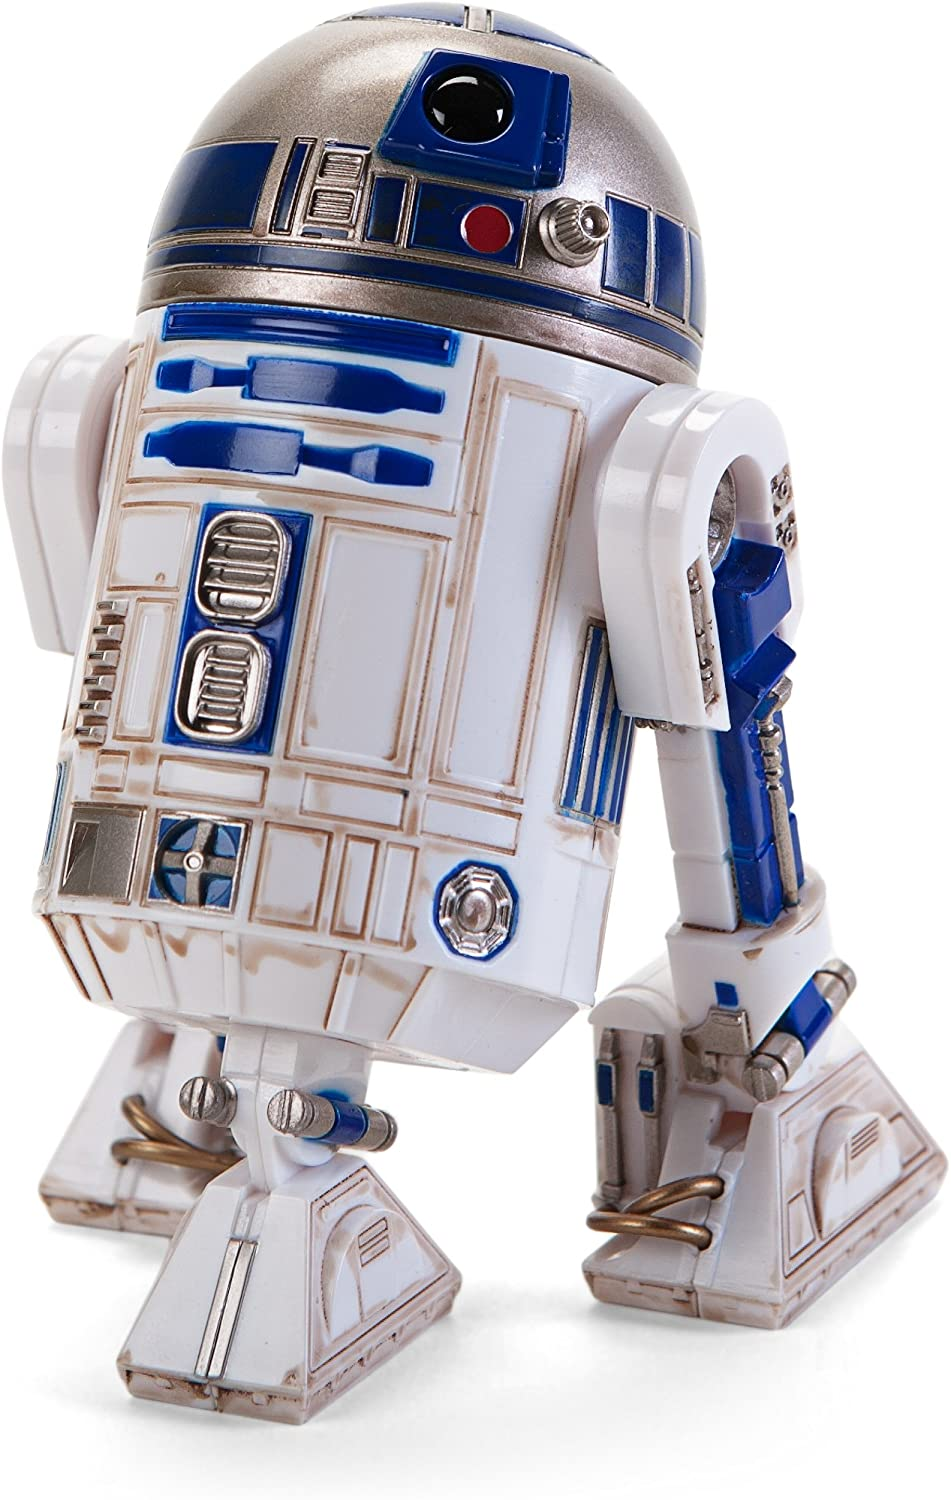 Star Wars VII  The Force Awakens R2D2 Premium 1 10 Scale Figure